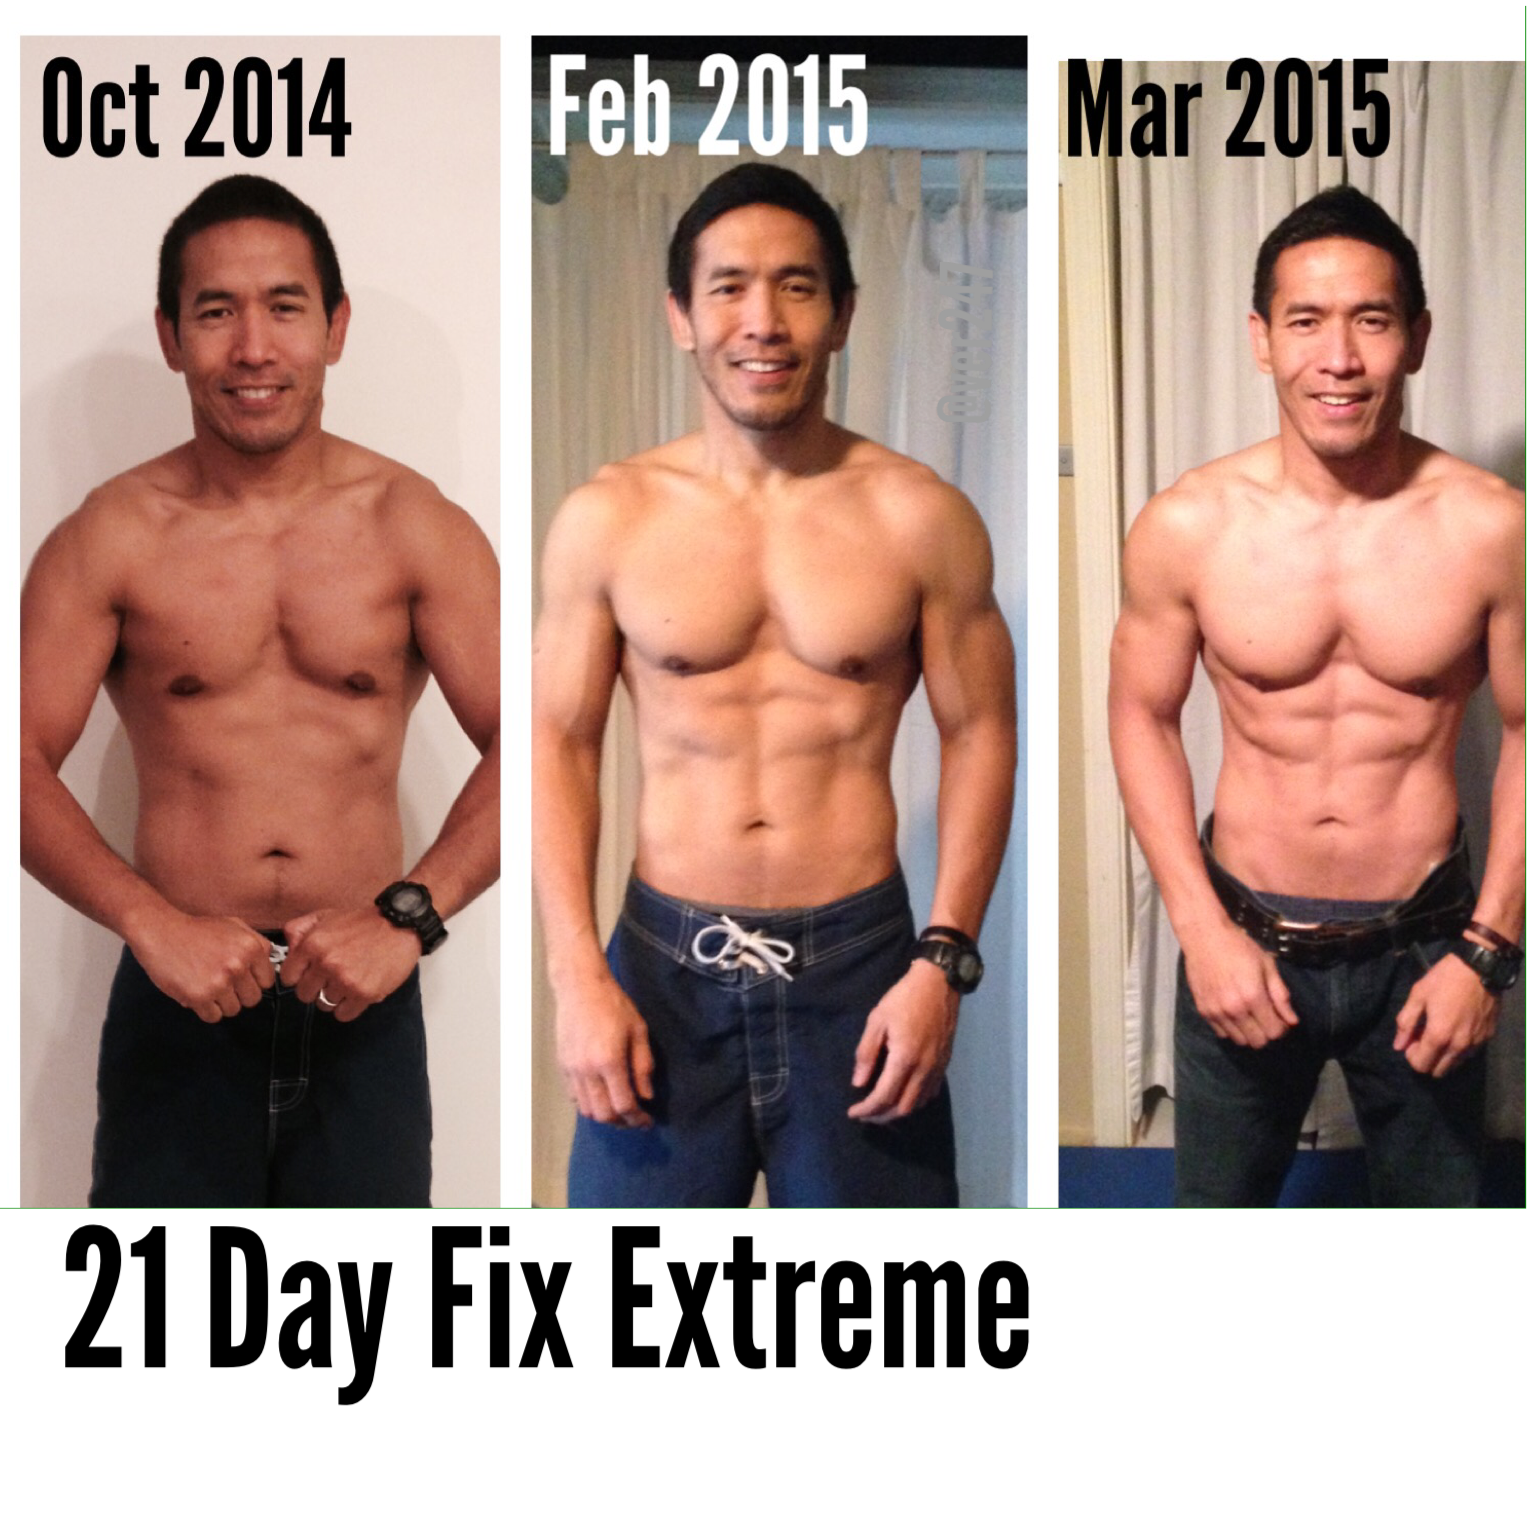 Oliver Esteban Body Transformation Fit As Ever at Age 43